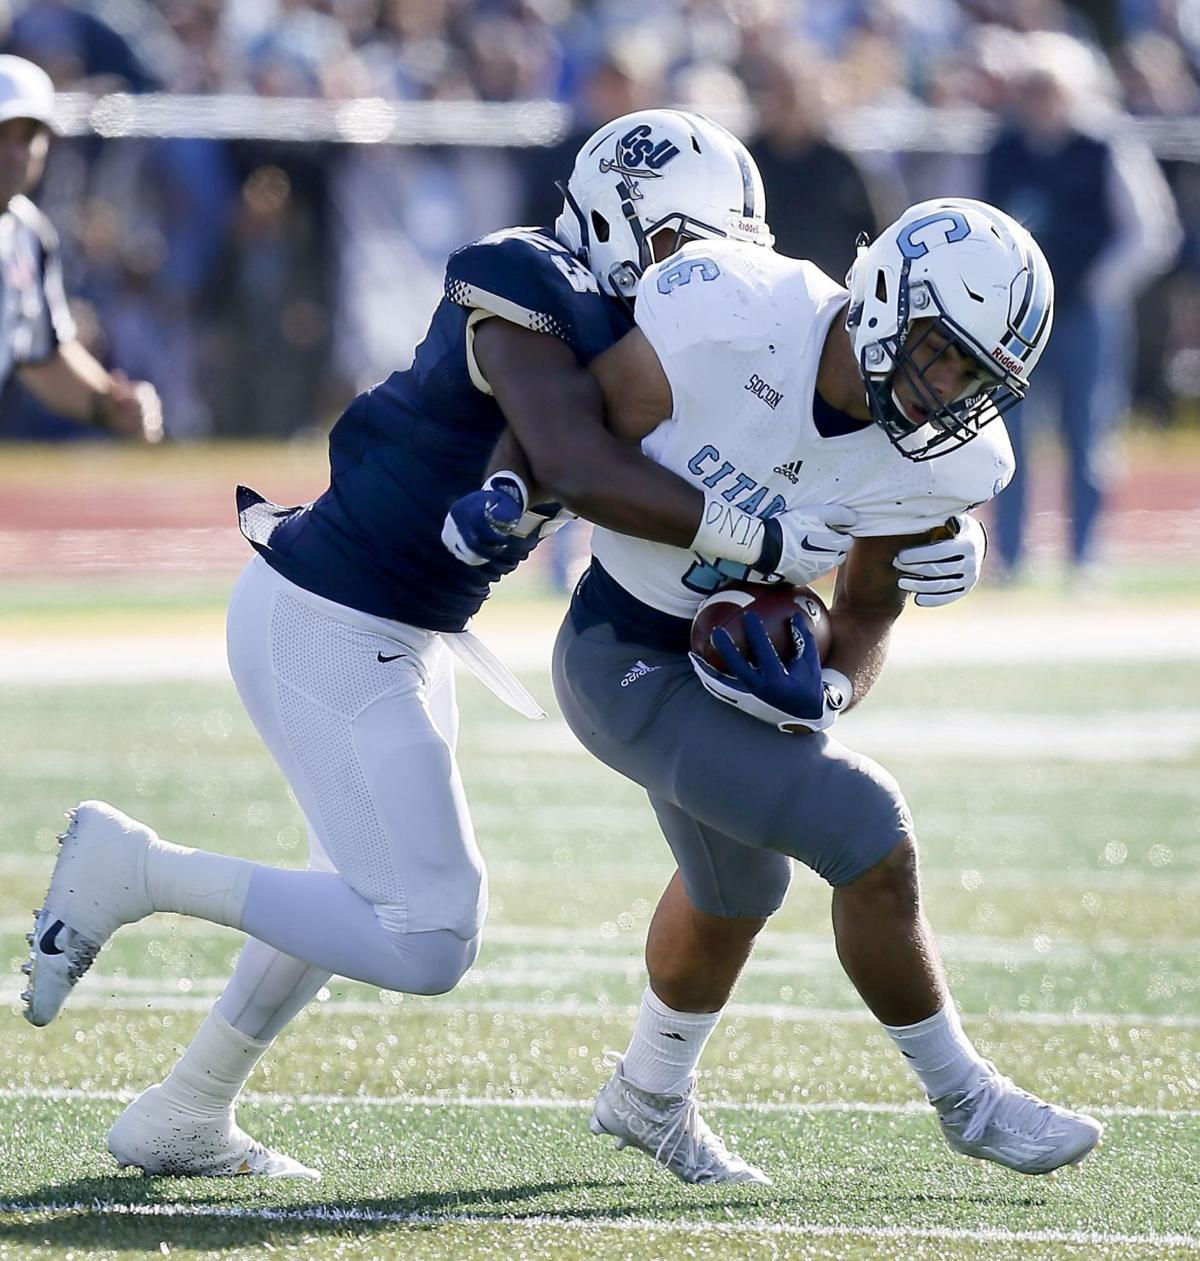 Citadel's Houston: Bulldogs 'changed the culture'